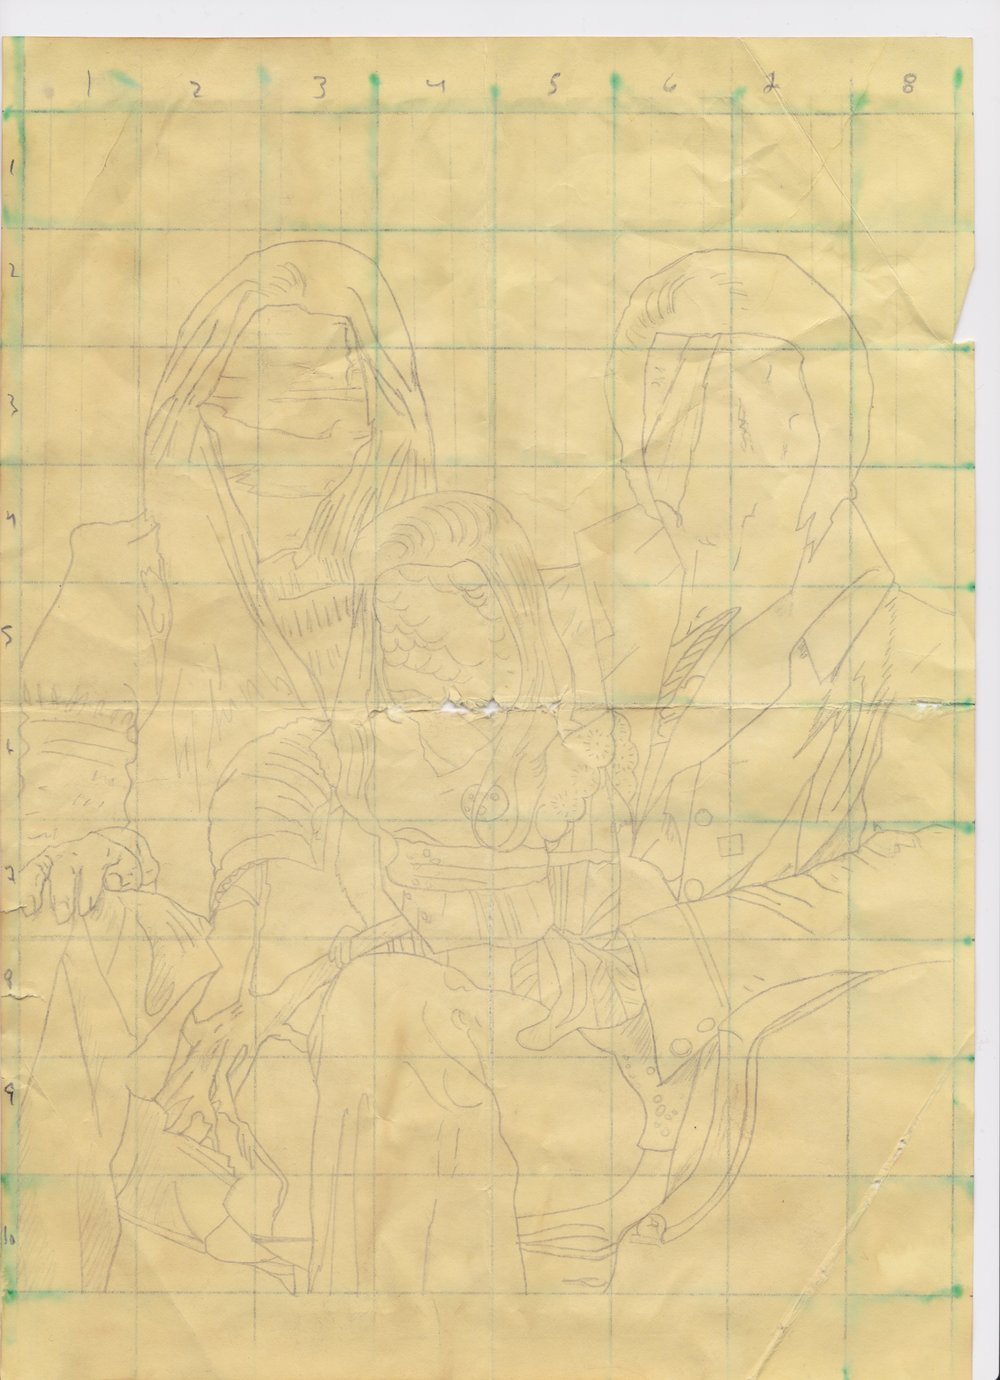 A4 Original Grid Sketch for Untitled, pencil and ink on paper, n. d.